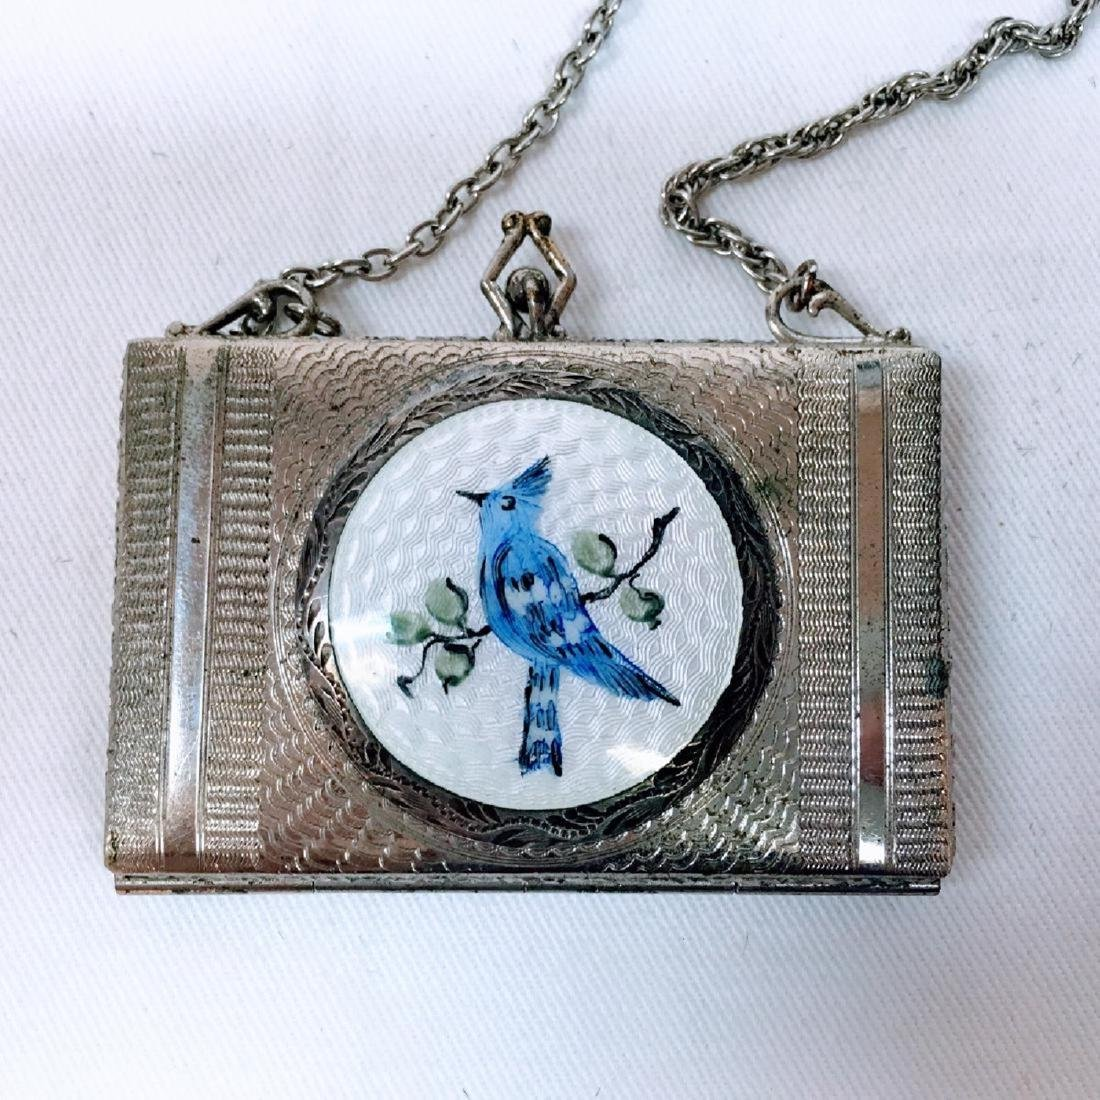 Antique silver Guilloche enamel dance compact with - 2